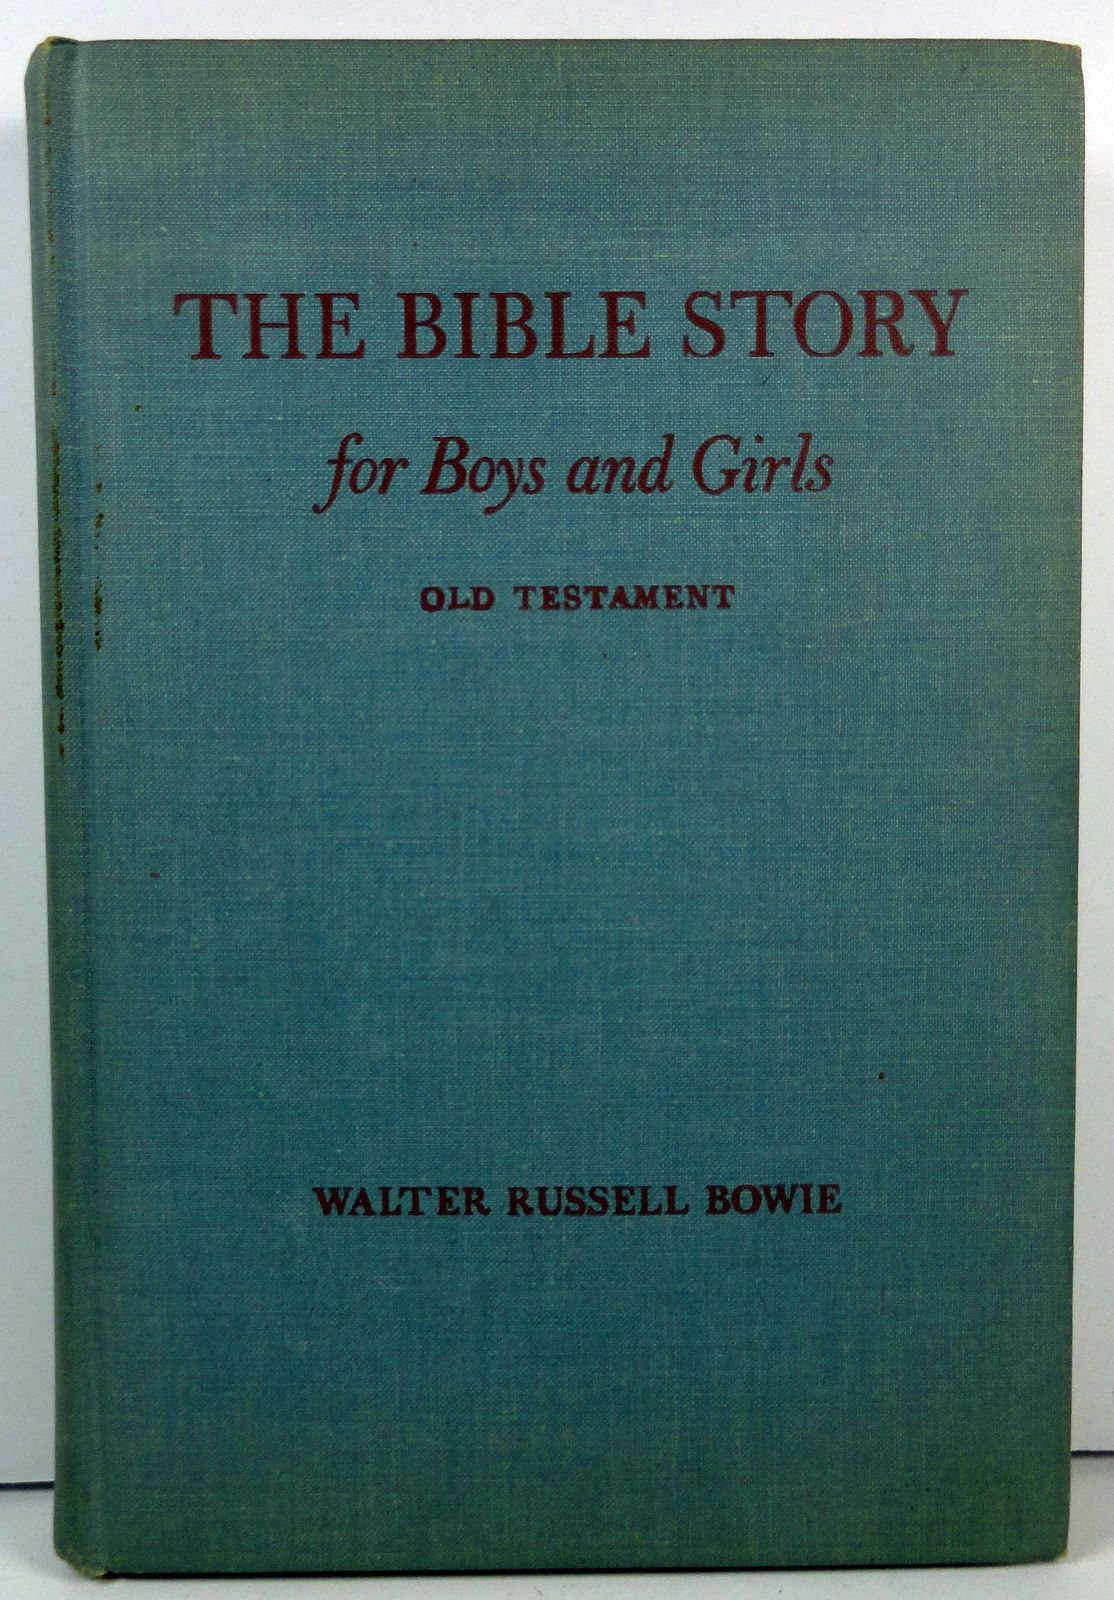 The Bible Story for Boys and Girls by Walter Russell Bowie